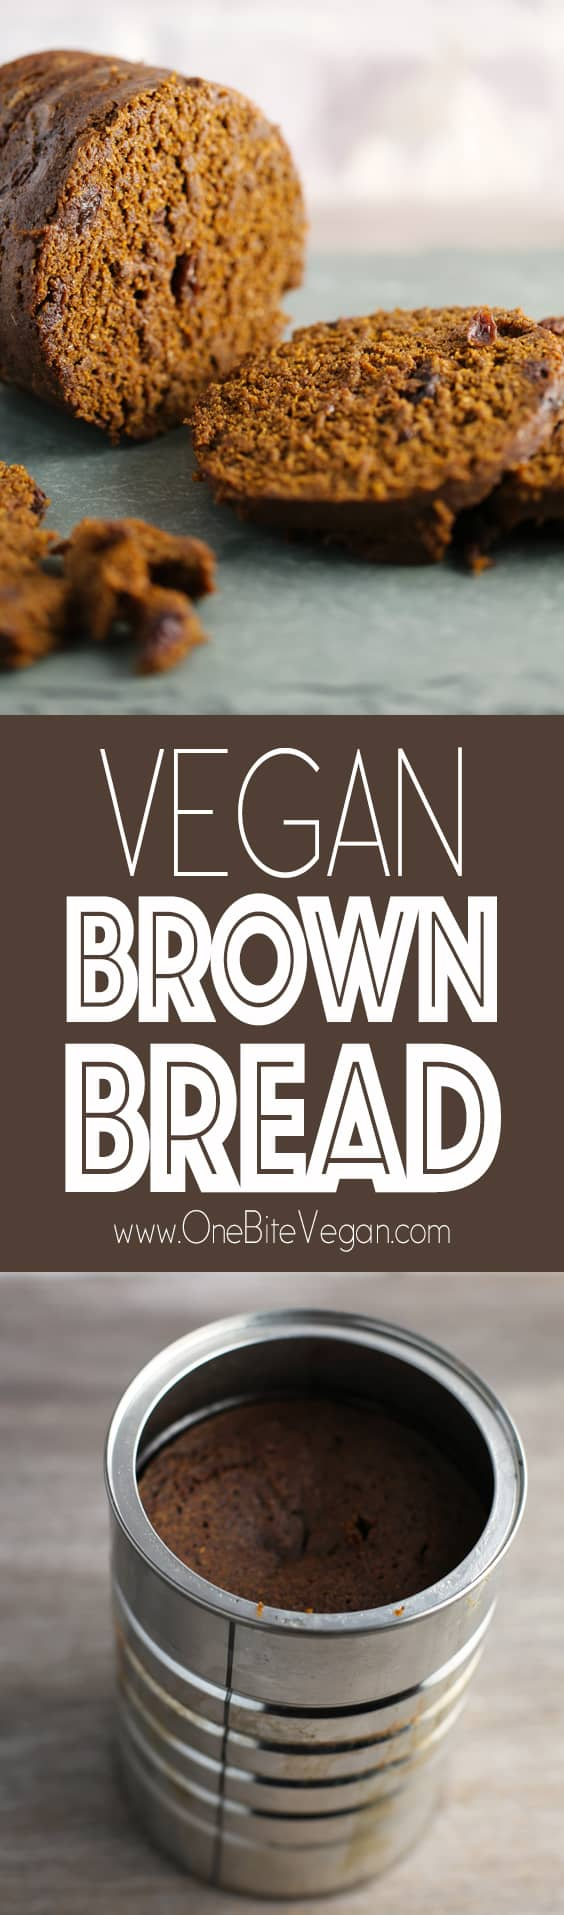 Vegan brown bread baked in a can. Rye, wheat, and corn flour blended with raisins, almond milk, molasses, baking soda, and salt then poured into a greased coffee can and baked in a water bath.